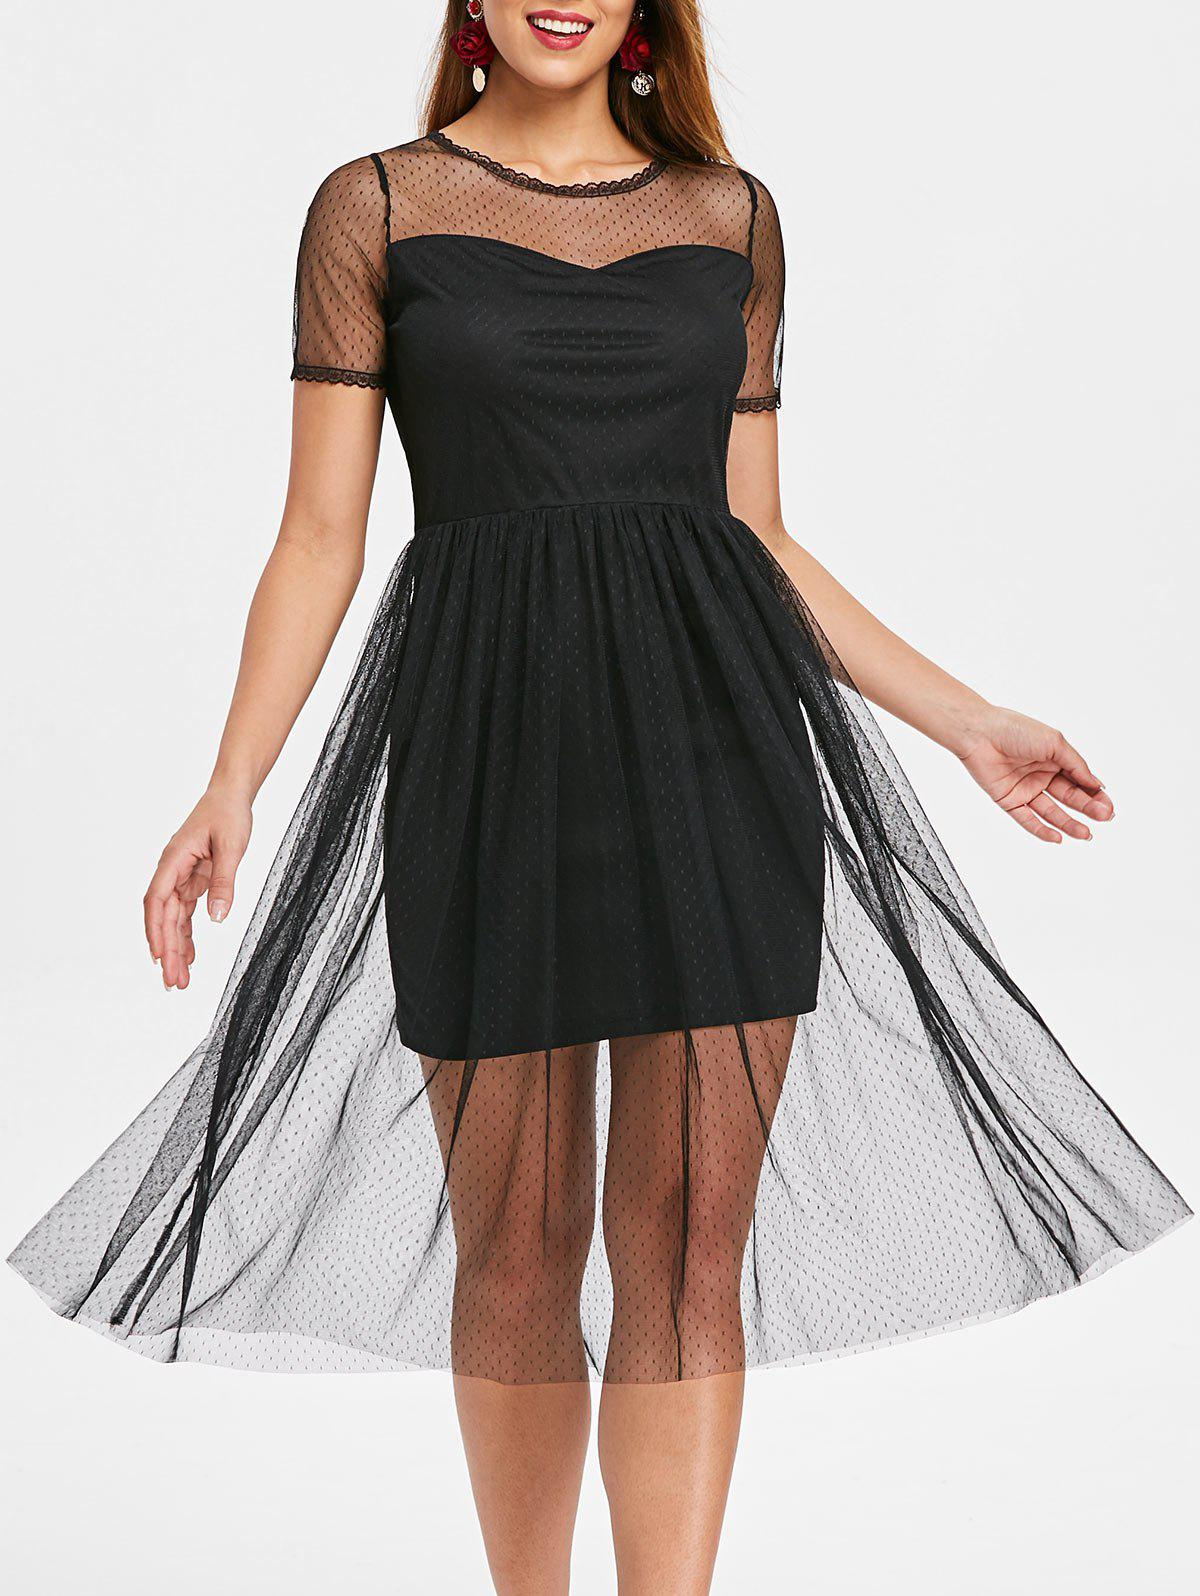 High Waist Mesh Overlay Dress - BLACK XL